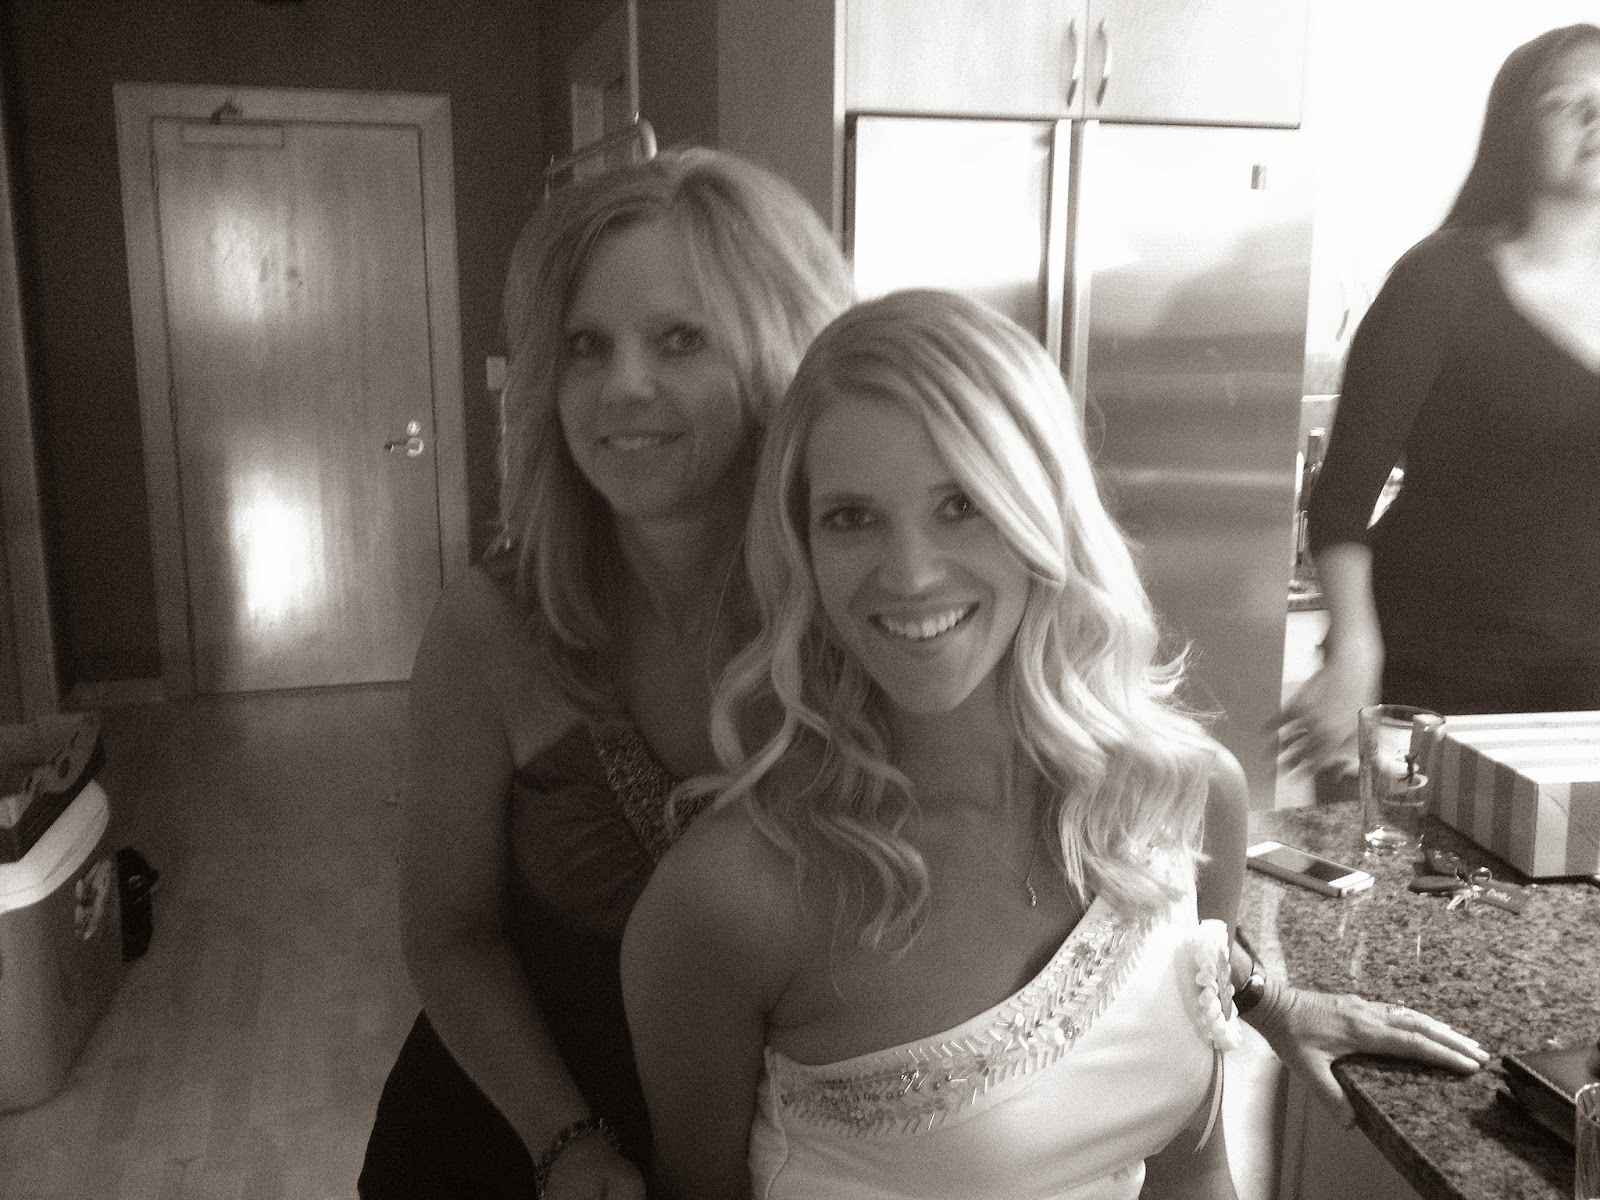 Mom and bride at bachelorette party